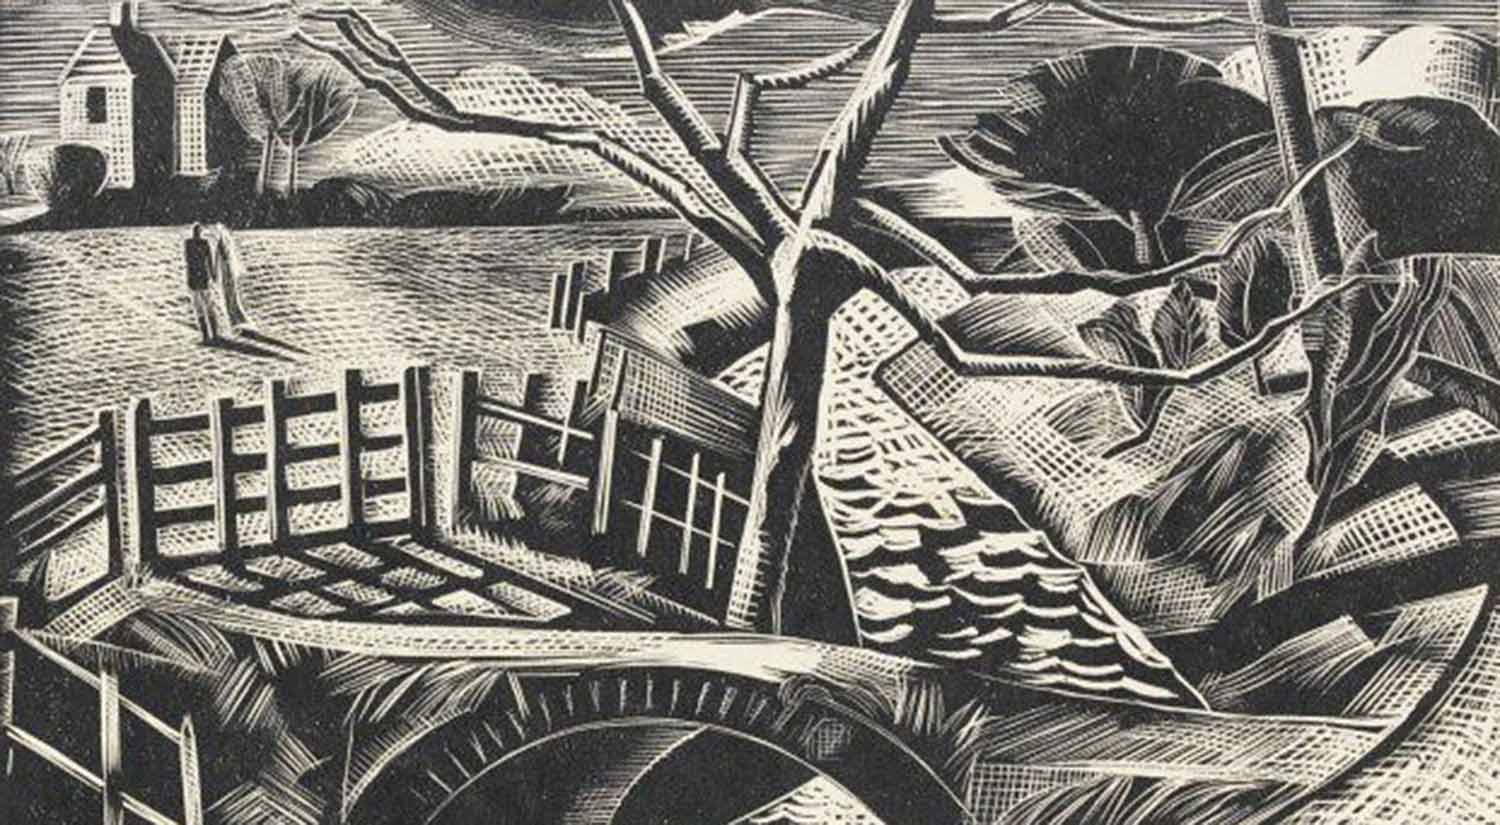 Dyke by the Road, by Paul Nash, wood engraving, 1922